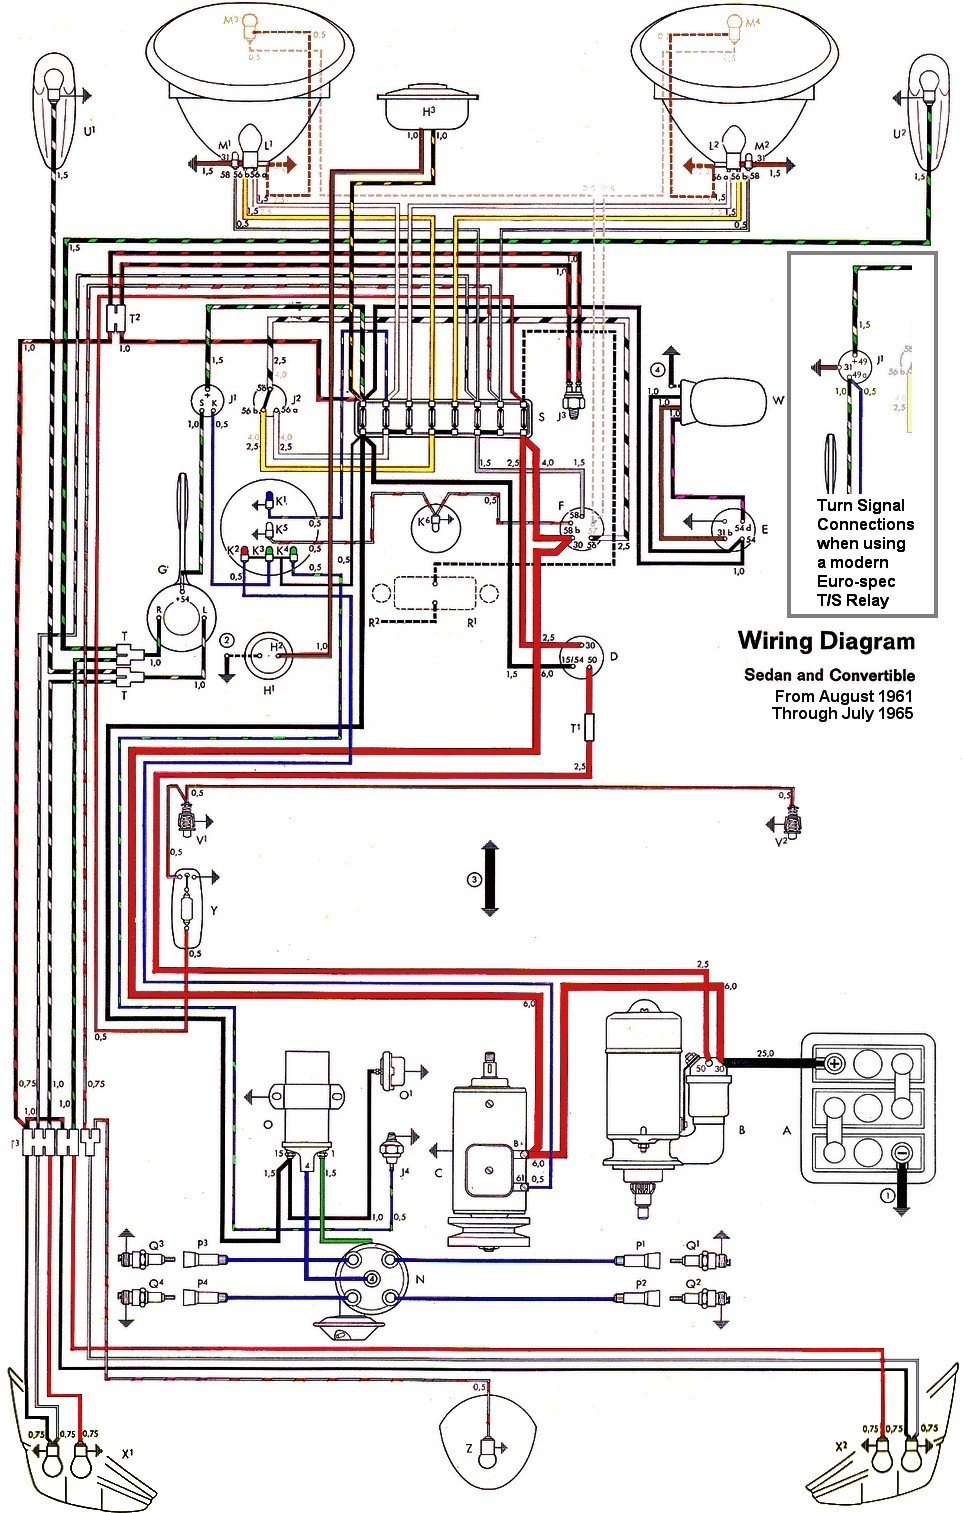 thesamba com type 1 wiring diagrams fuse box diagram 2013 vw beetle fuse box in vw beetle #47